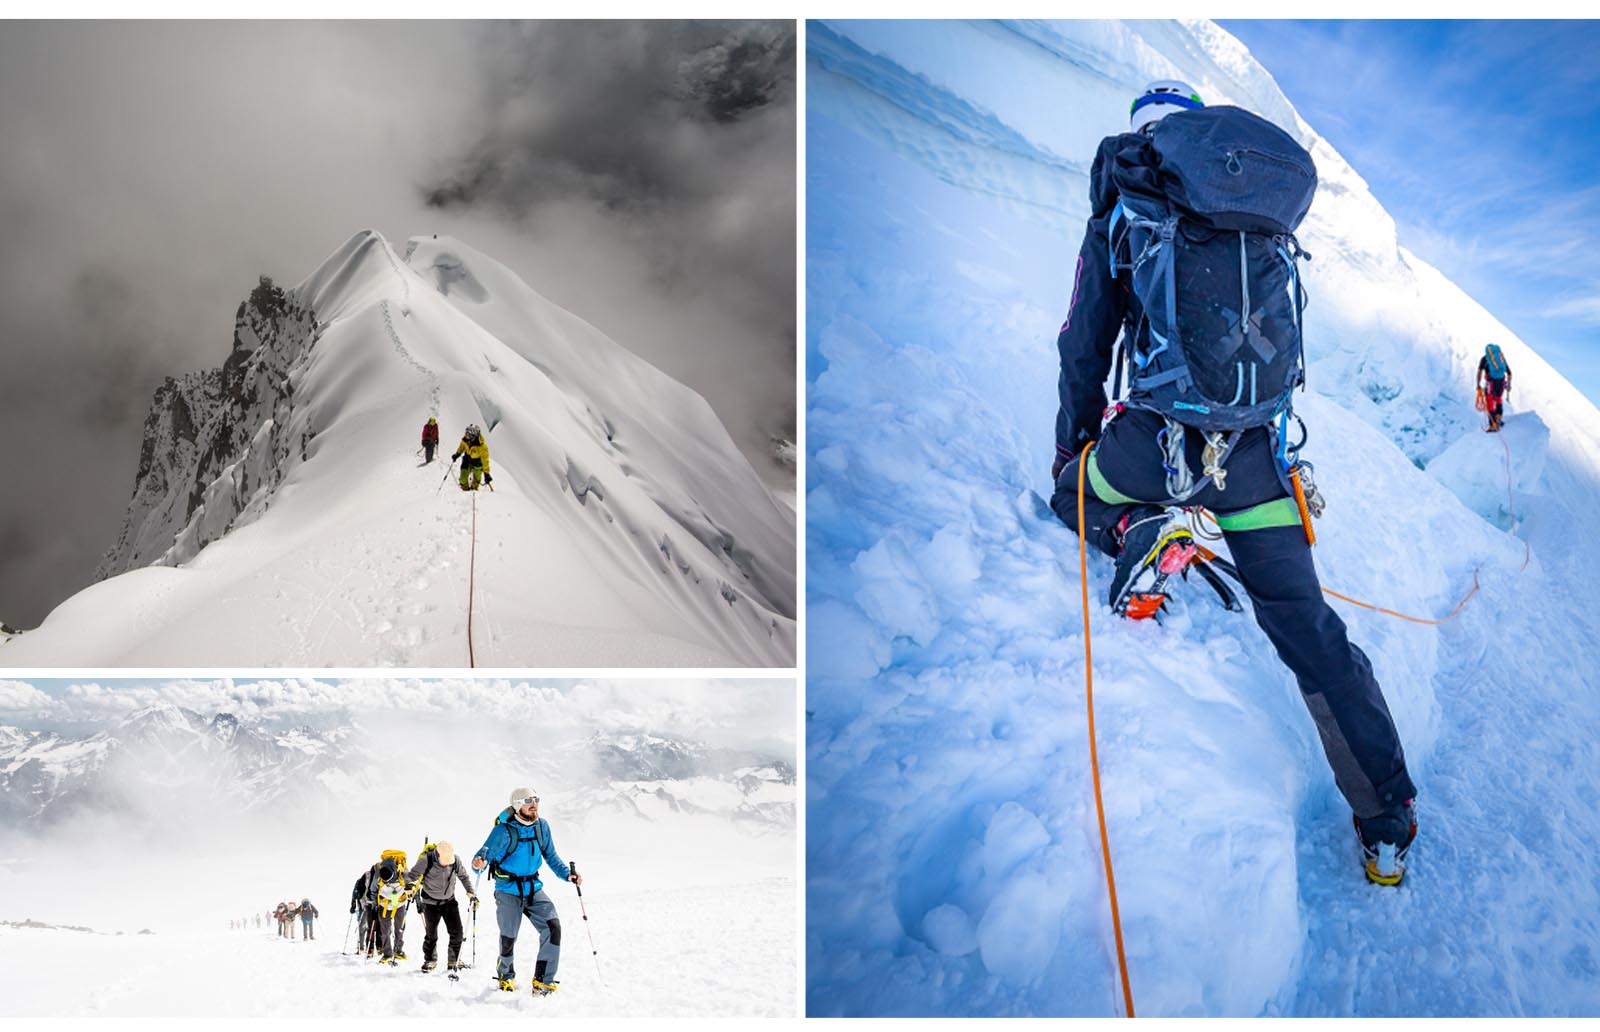 mountaineering in snow